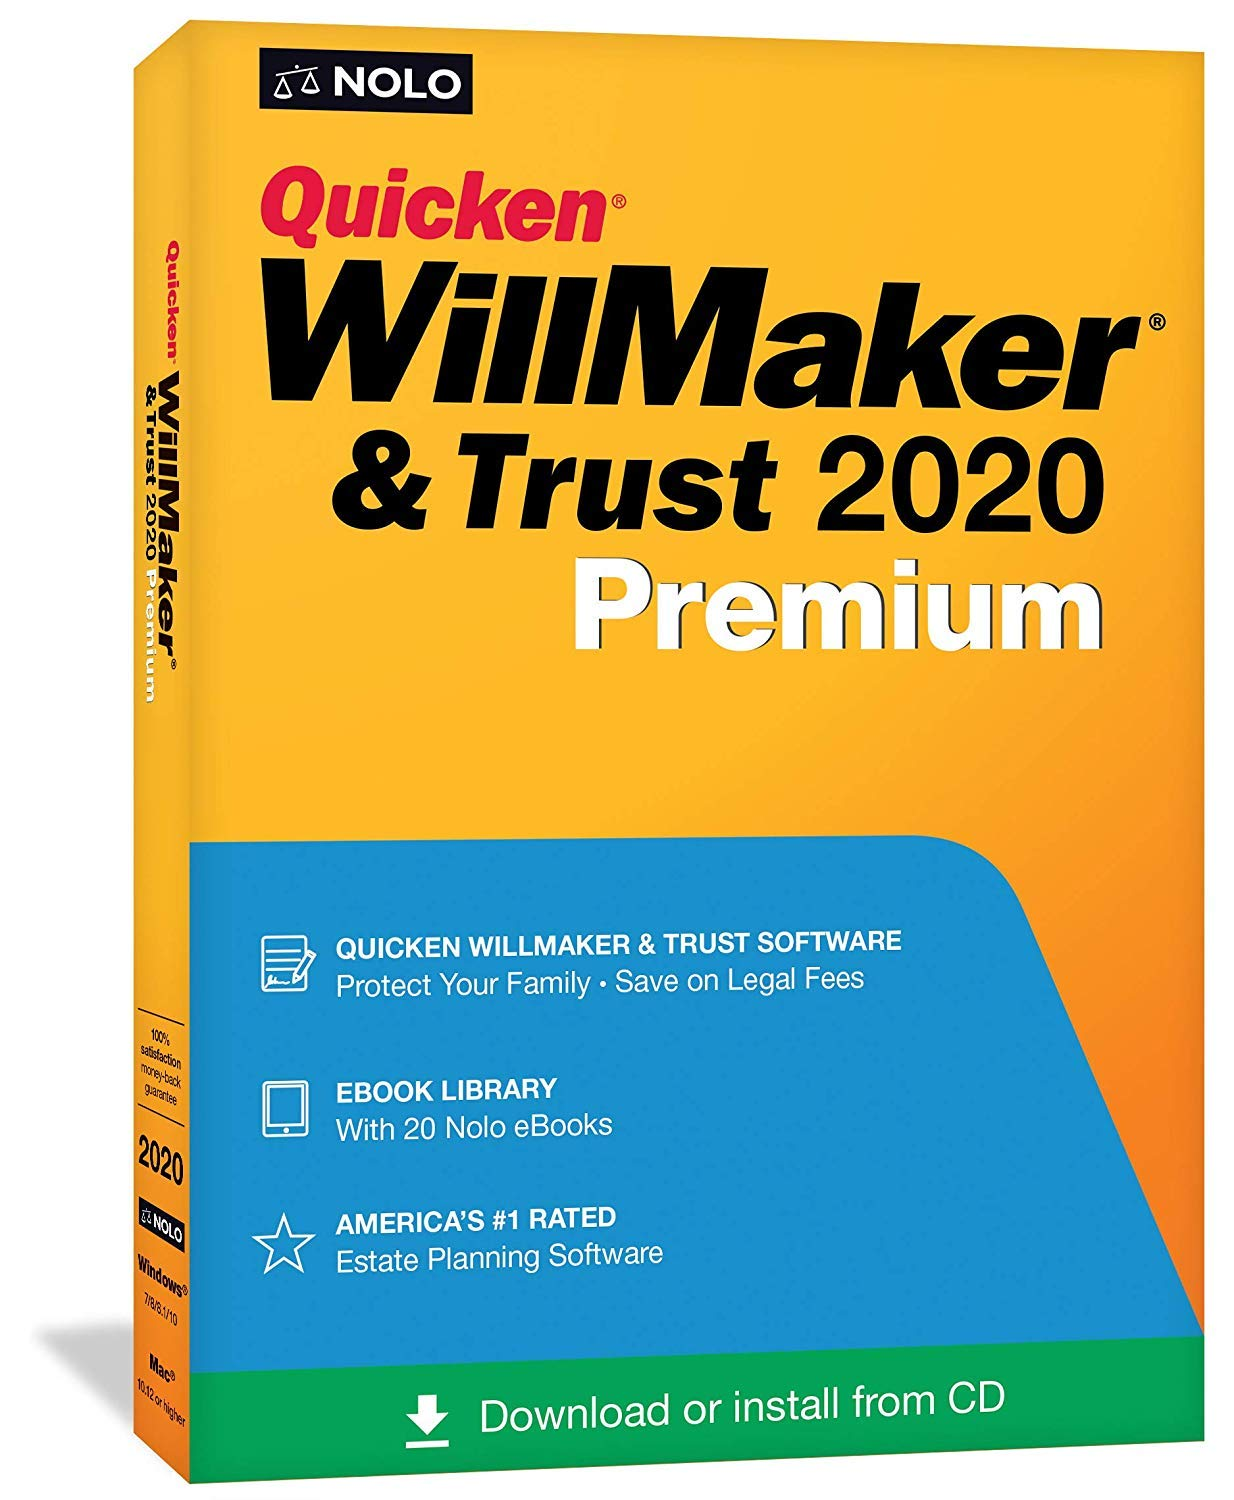 Quicken WillMaker & Trust 2020 Premium | Living Trust | Disc & Download Keycard | Windows & Mac | Nolo's eBook Library (Includes Get It Together + Special Needs Trust + More) by Quicken